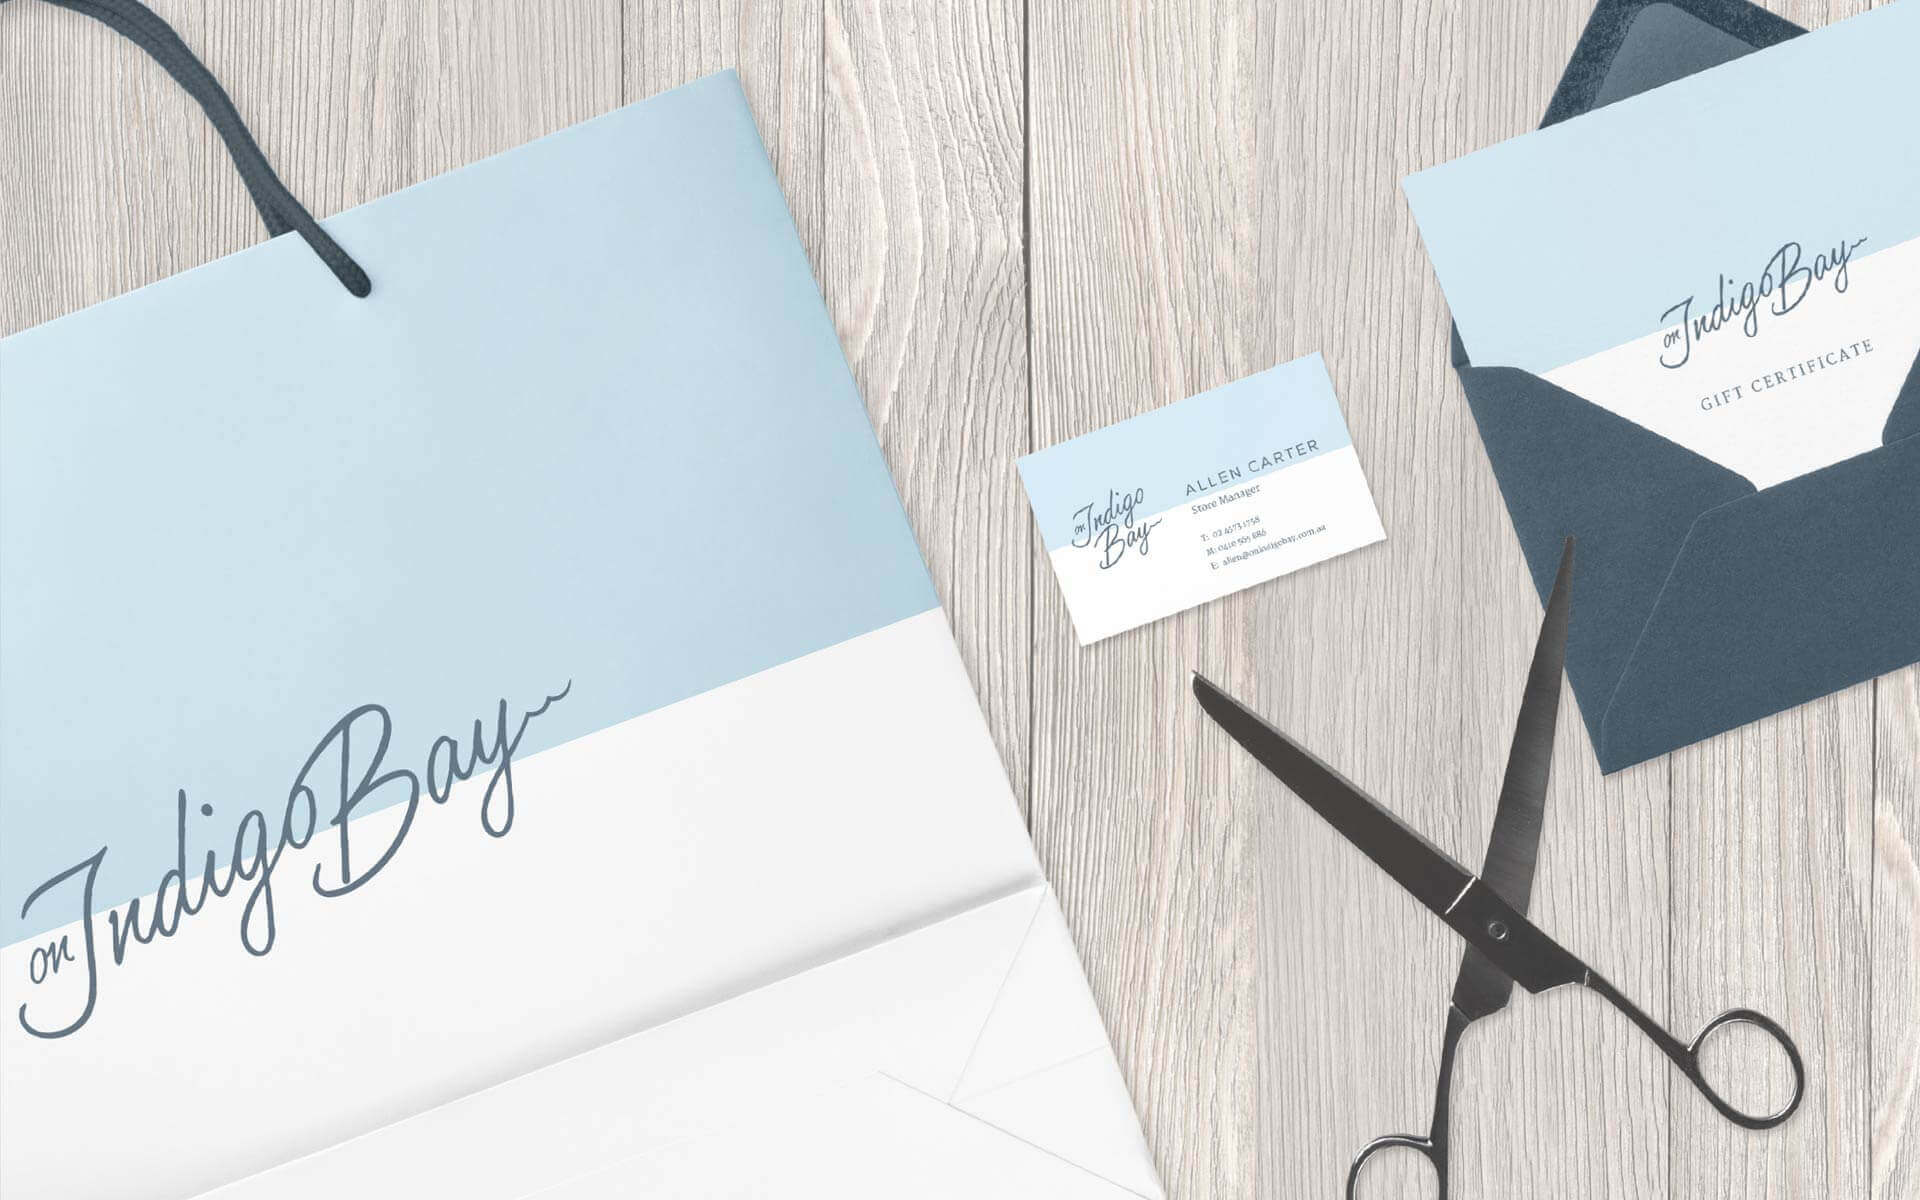 On Indigo bay bag and gift card design